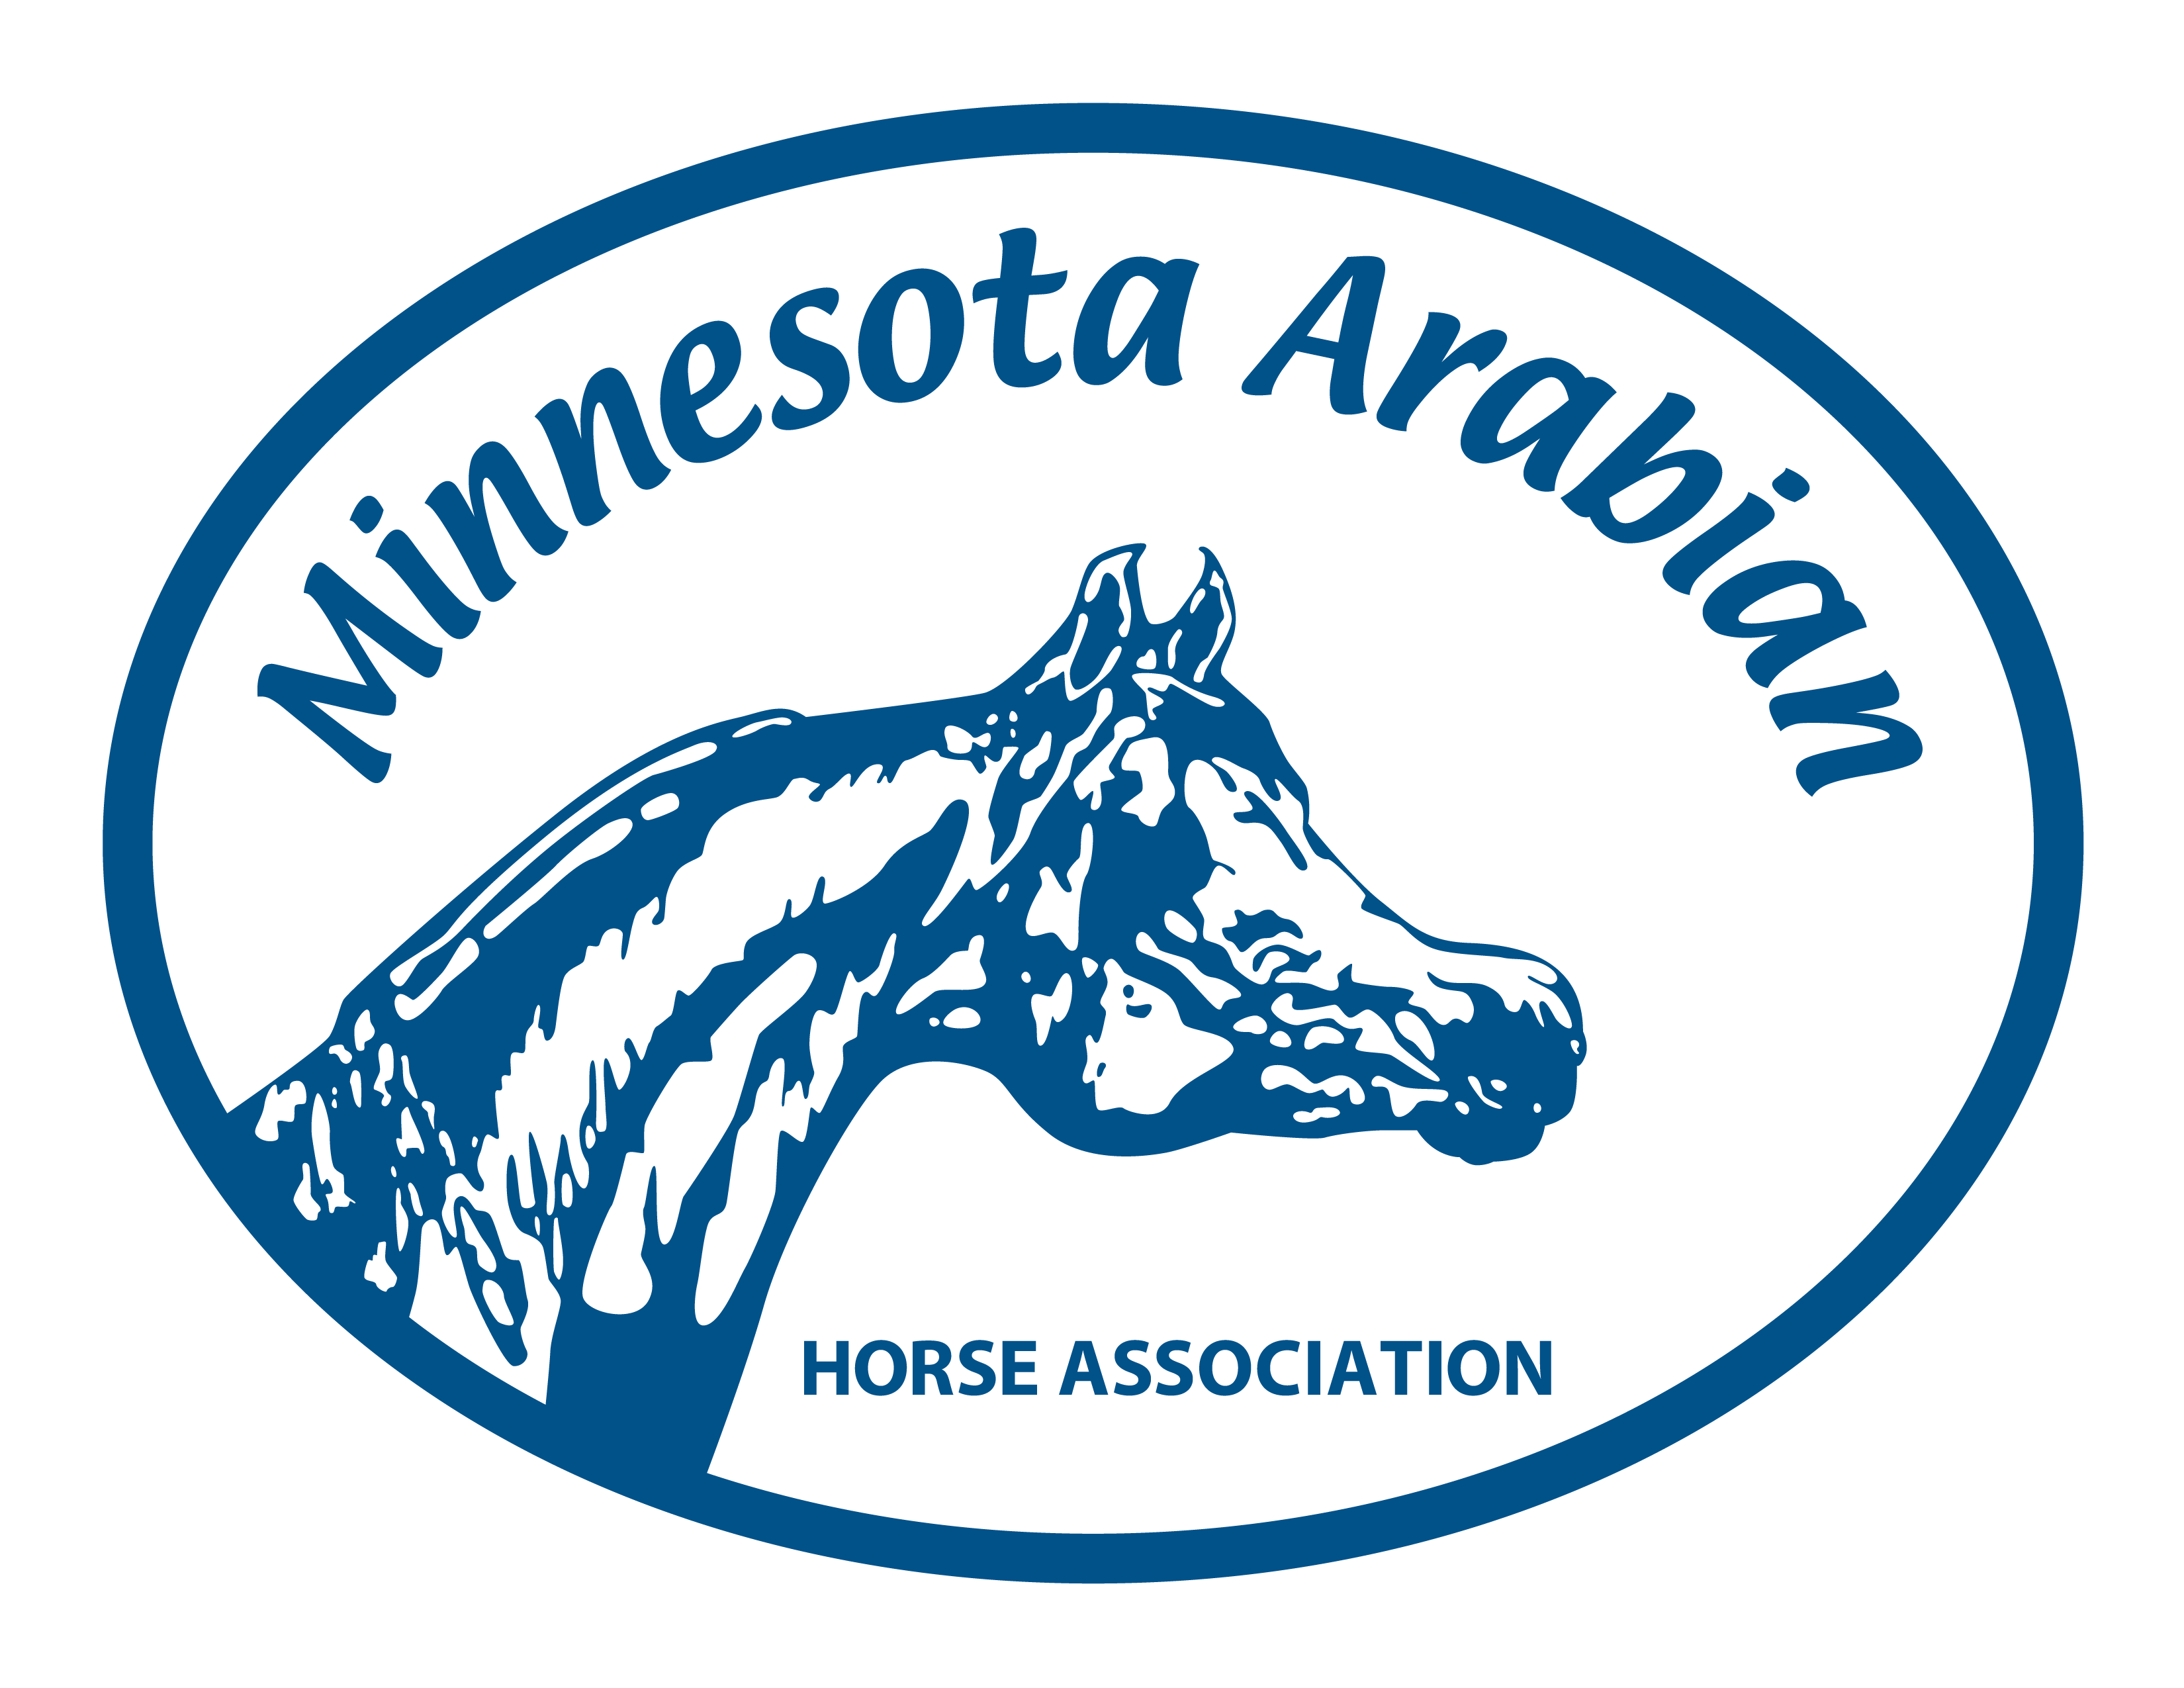 Minnesota Arabian Horse Association - MAHA